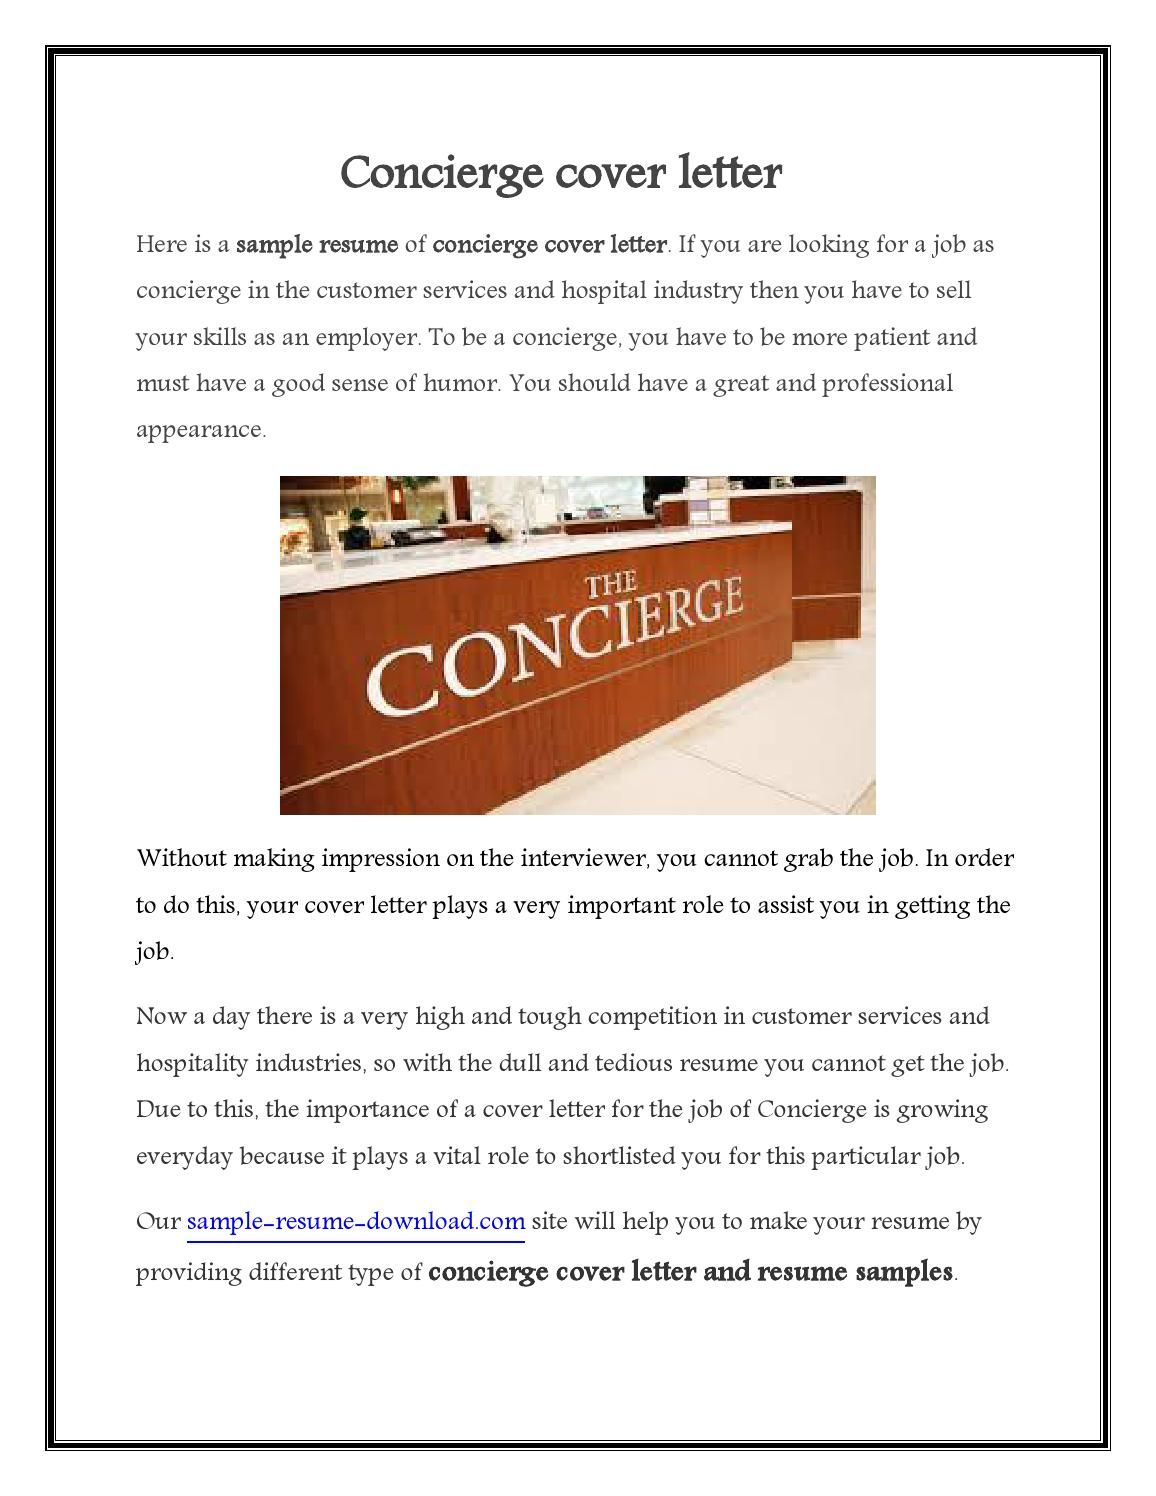 As the name suggests the concierge cover letter contains the